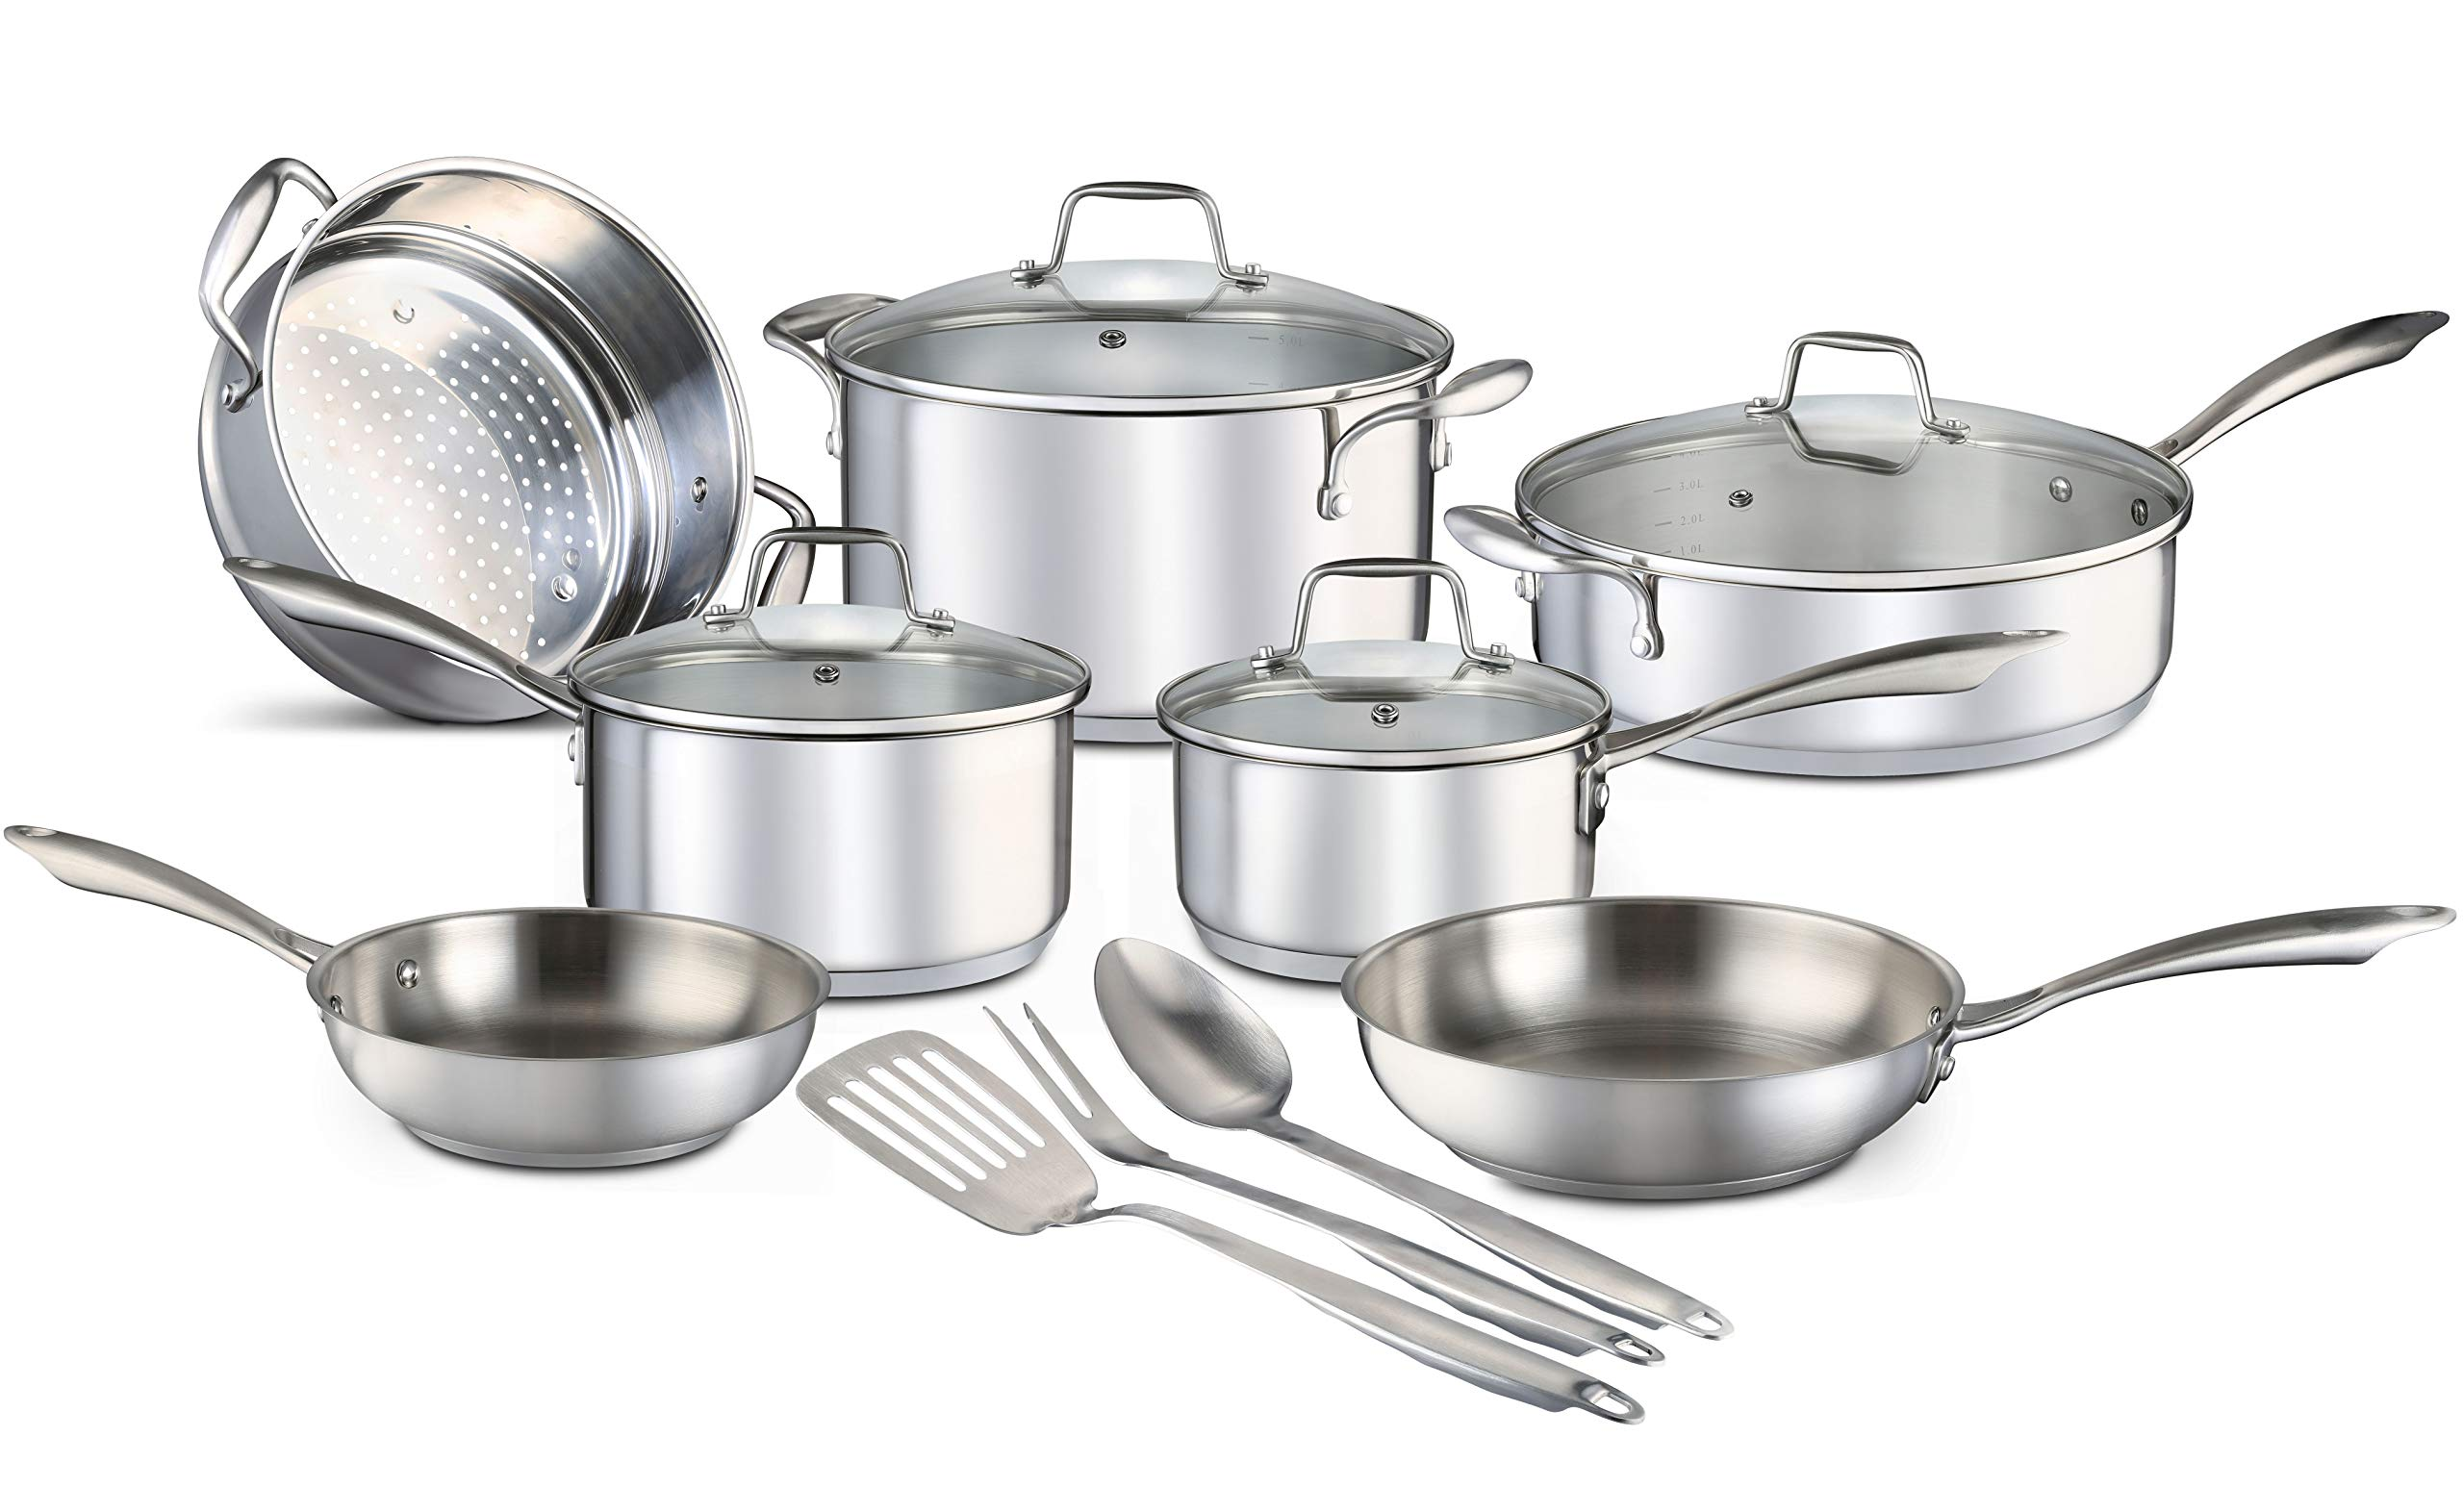 Chef S Star 14 Piece Stainless Steel Pots And Pans Set Professional Grade Kitchen Induction Cookware Oven And Freezer Safe Impact Bonded Technology Includes Three Cooking Utensils Amazon Ca Home Kitchen